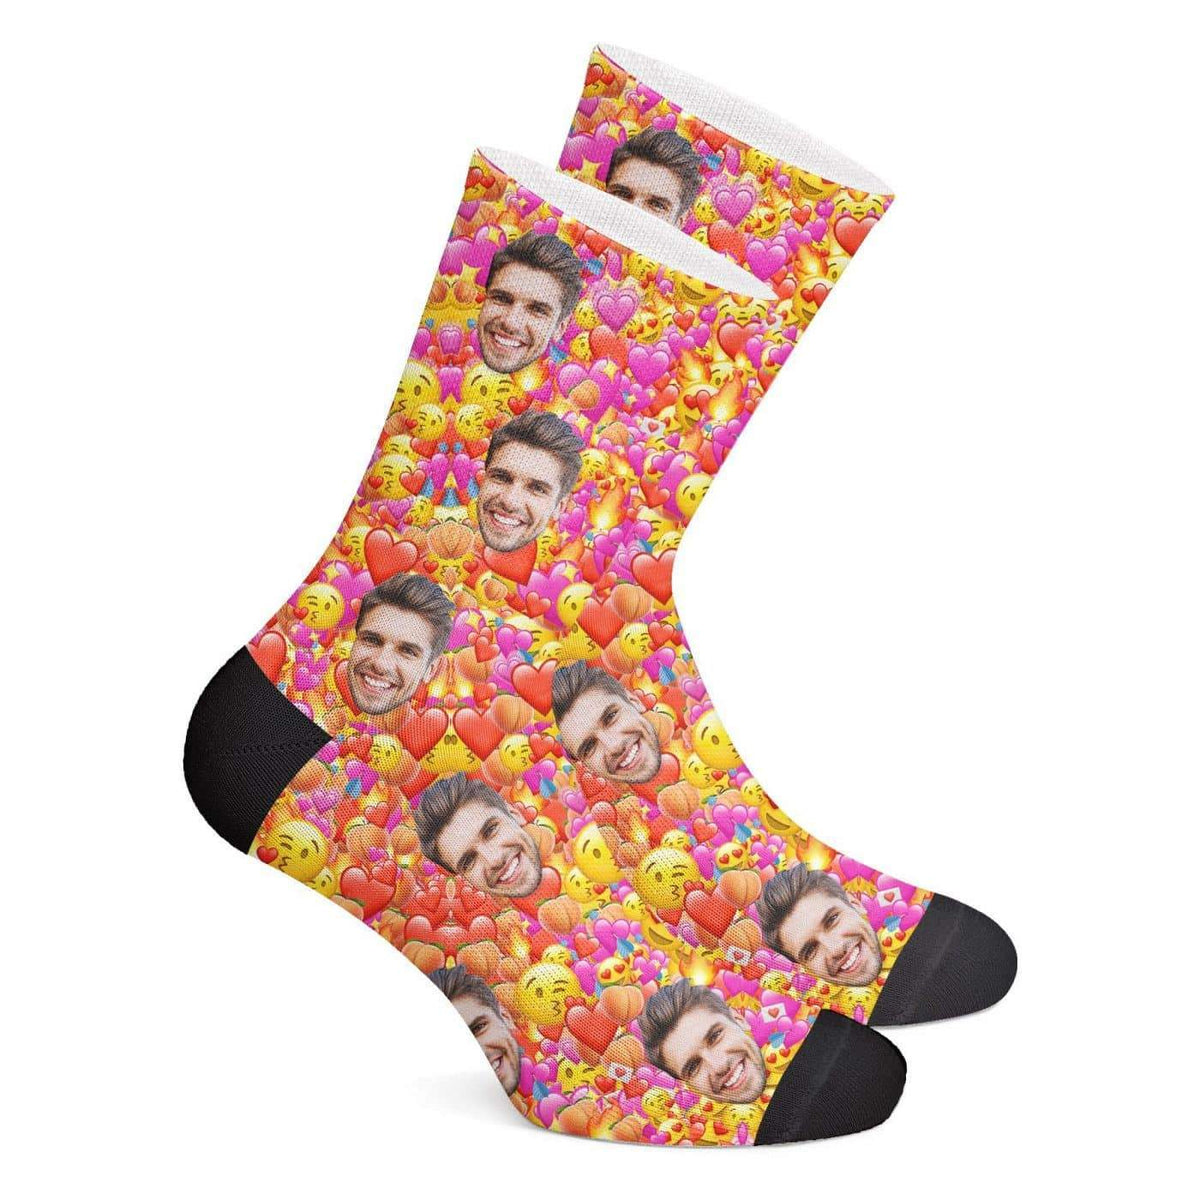 Customized Emoji Socks